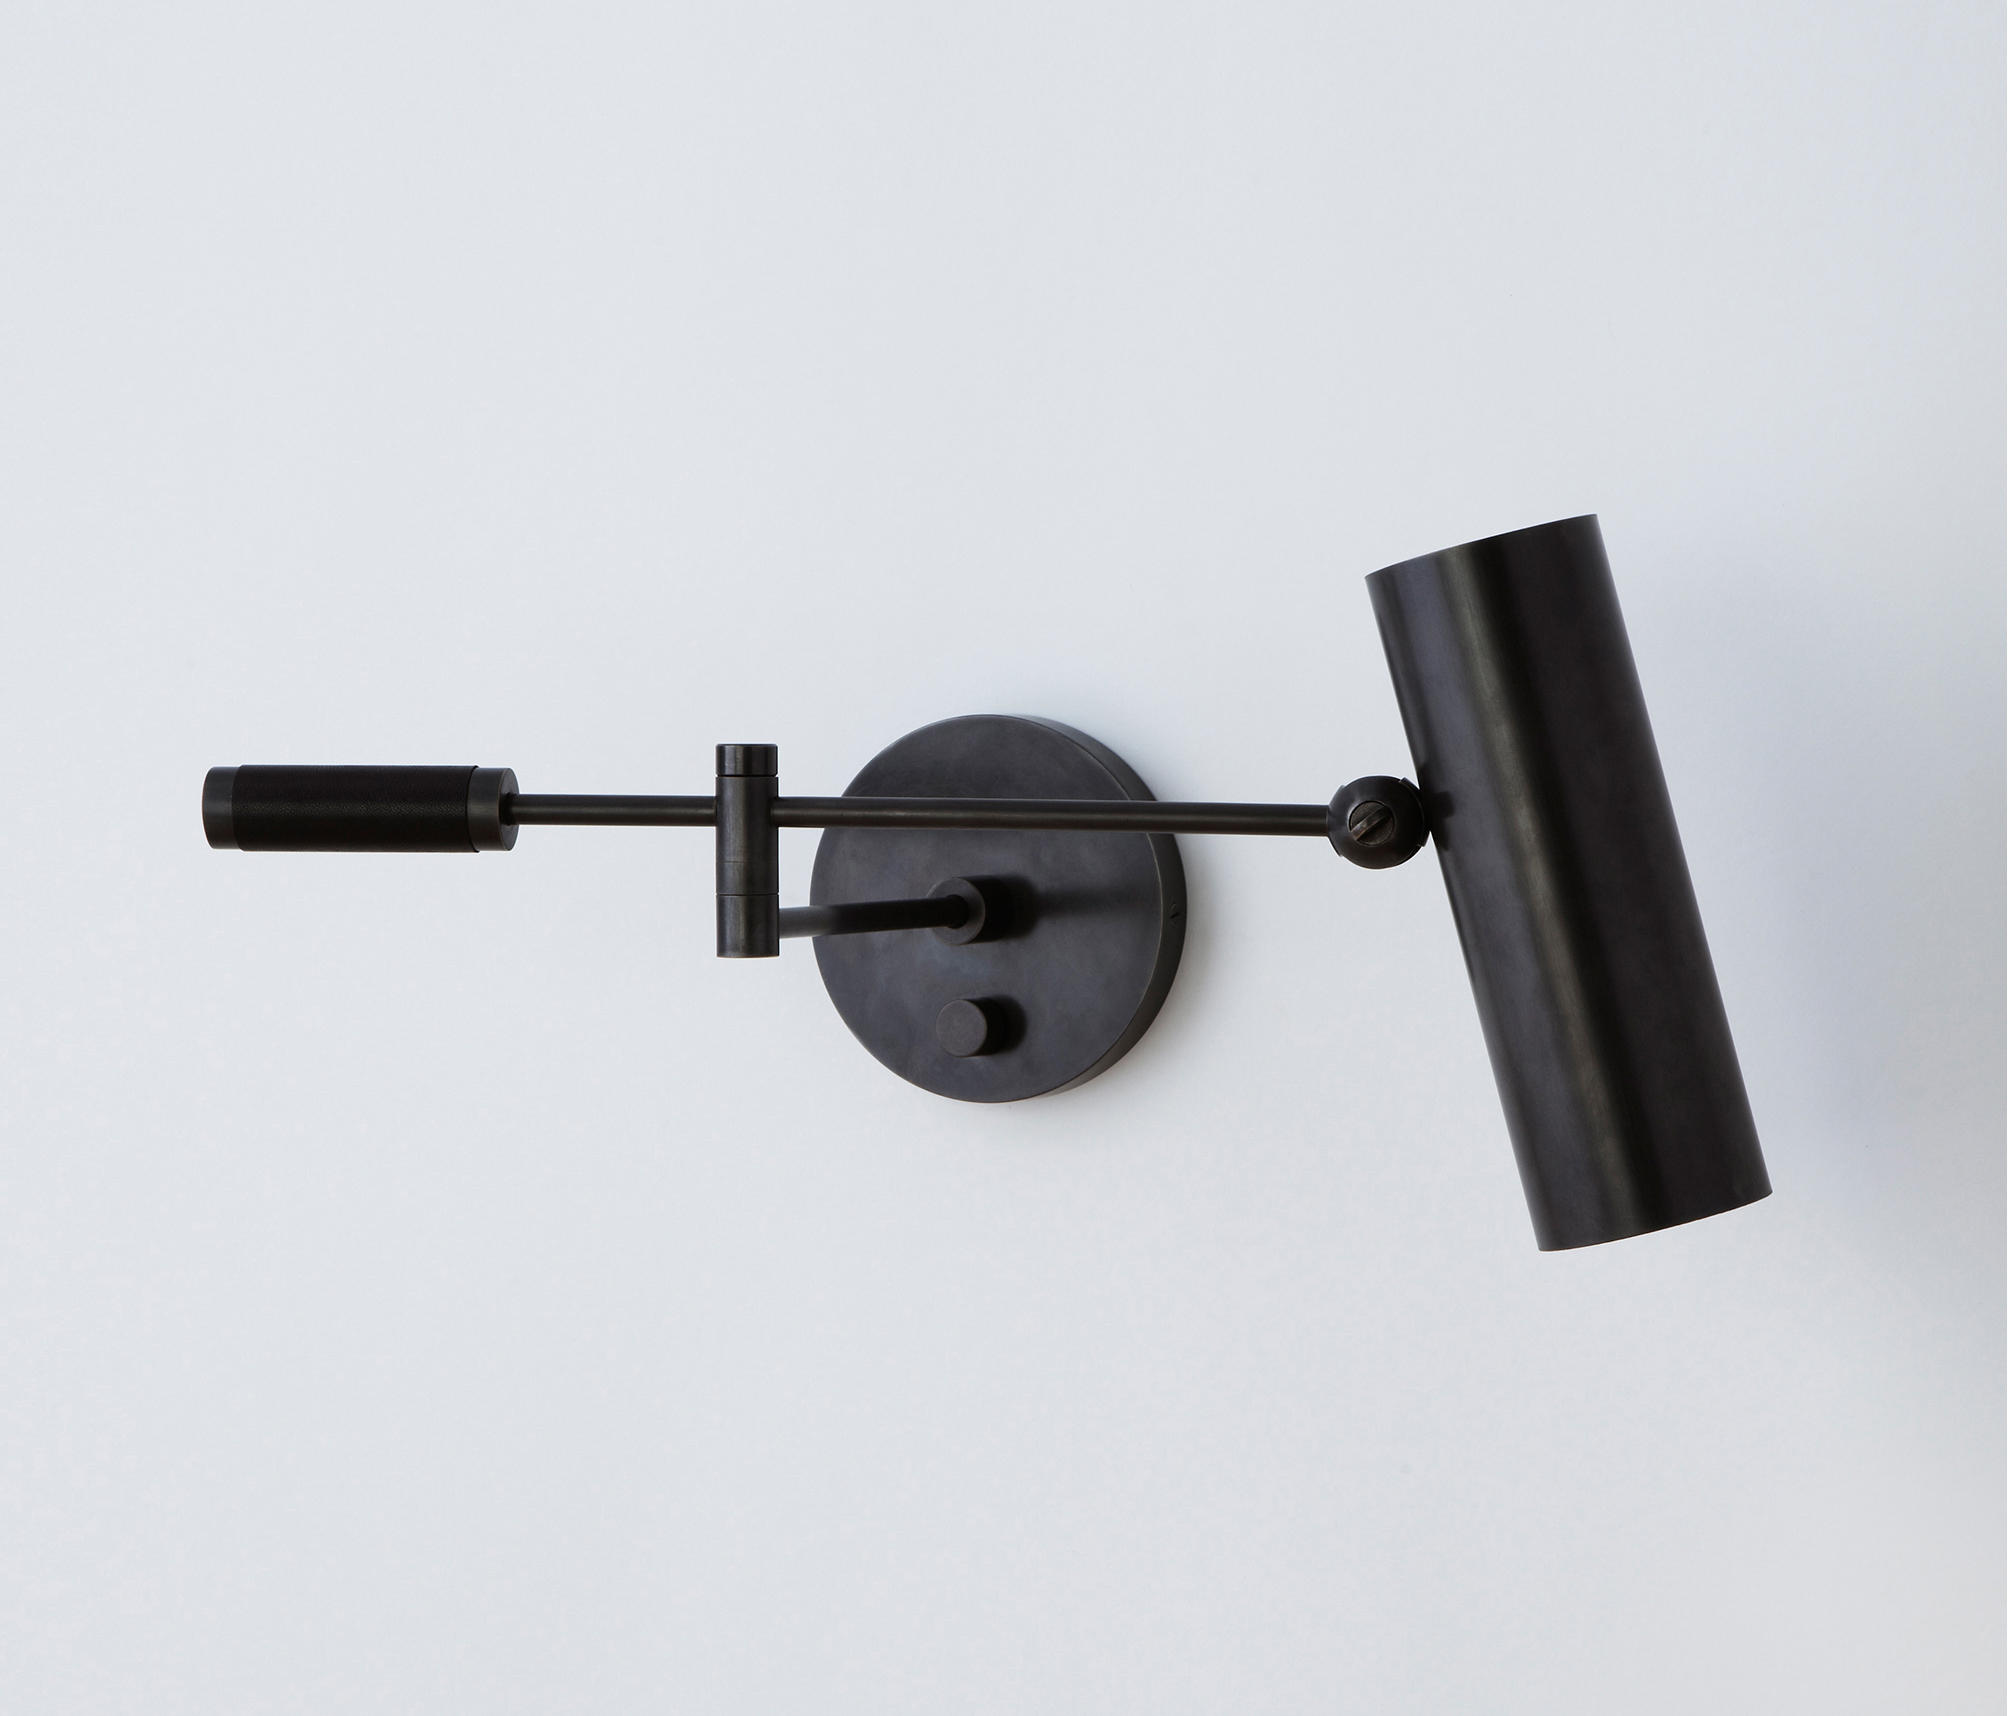 CYLINDER SWING ARM SCONCE - Wall-mounted spotlights from Apparatus Architonic